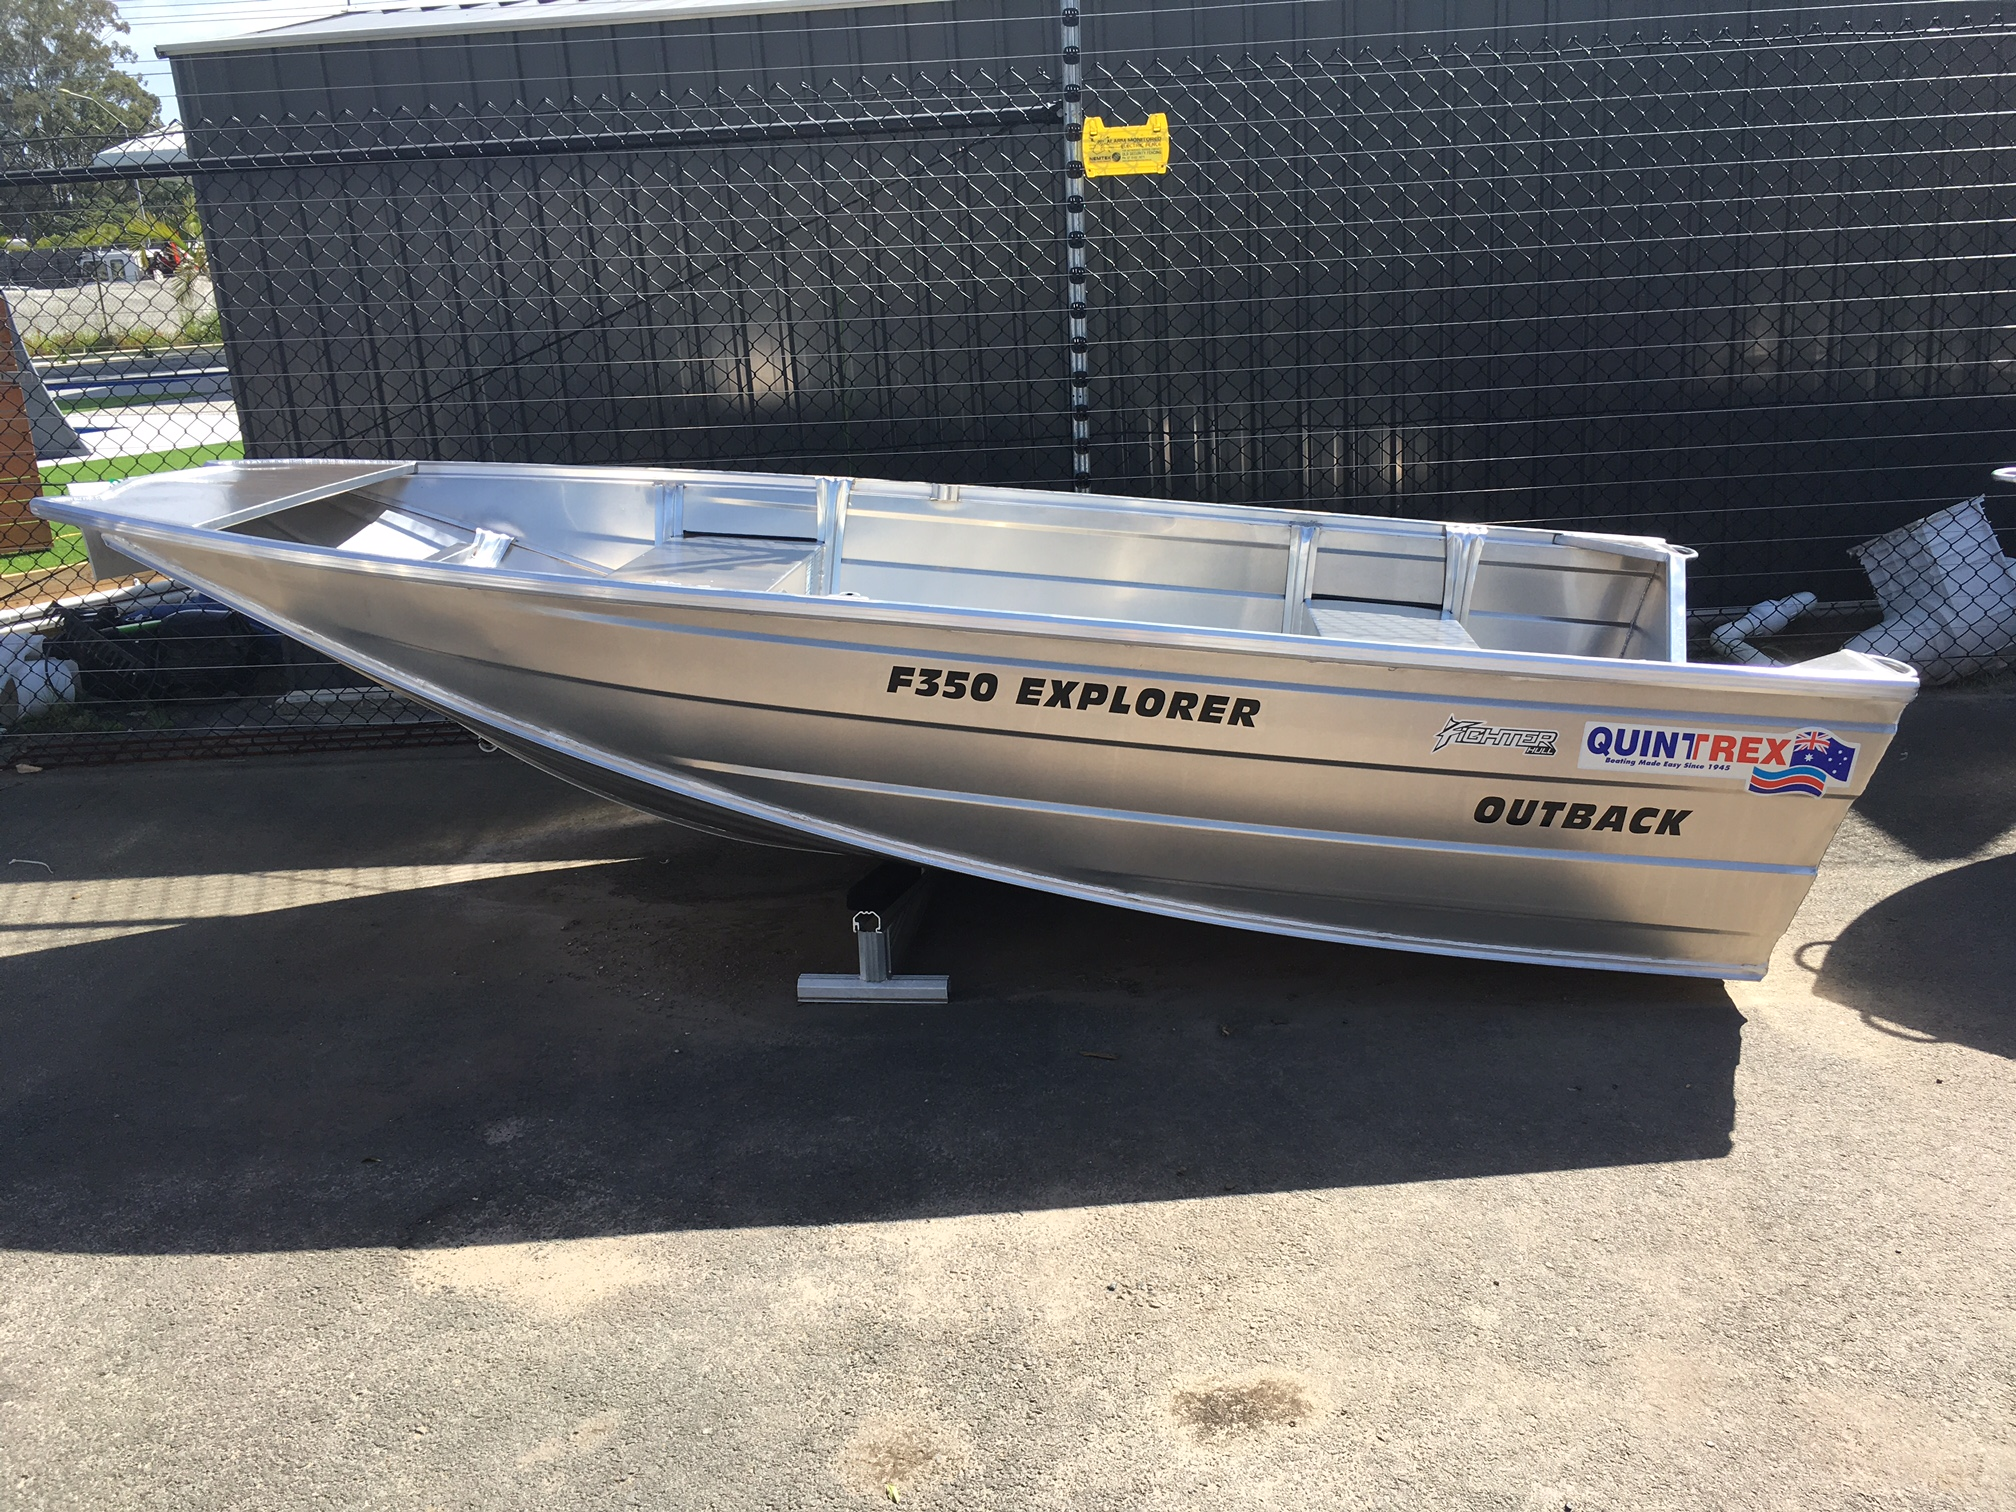 NEW QUINTREX F350 OUTBACK EXPLORER WITH 15HP 4 STROKE